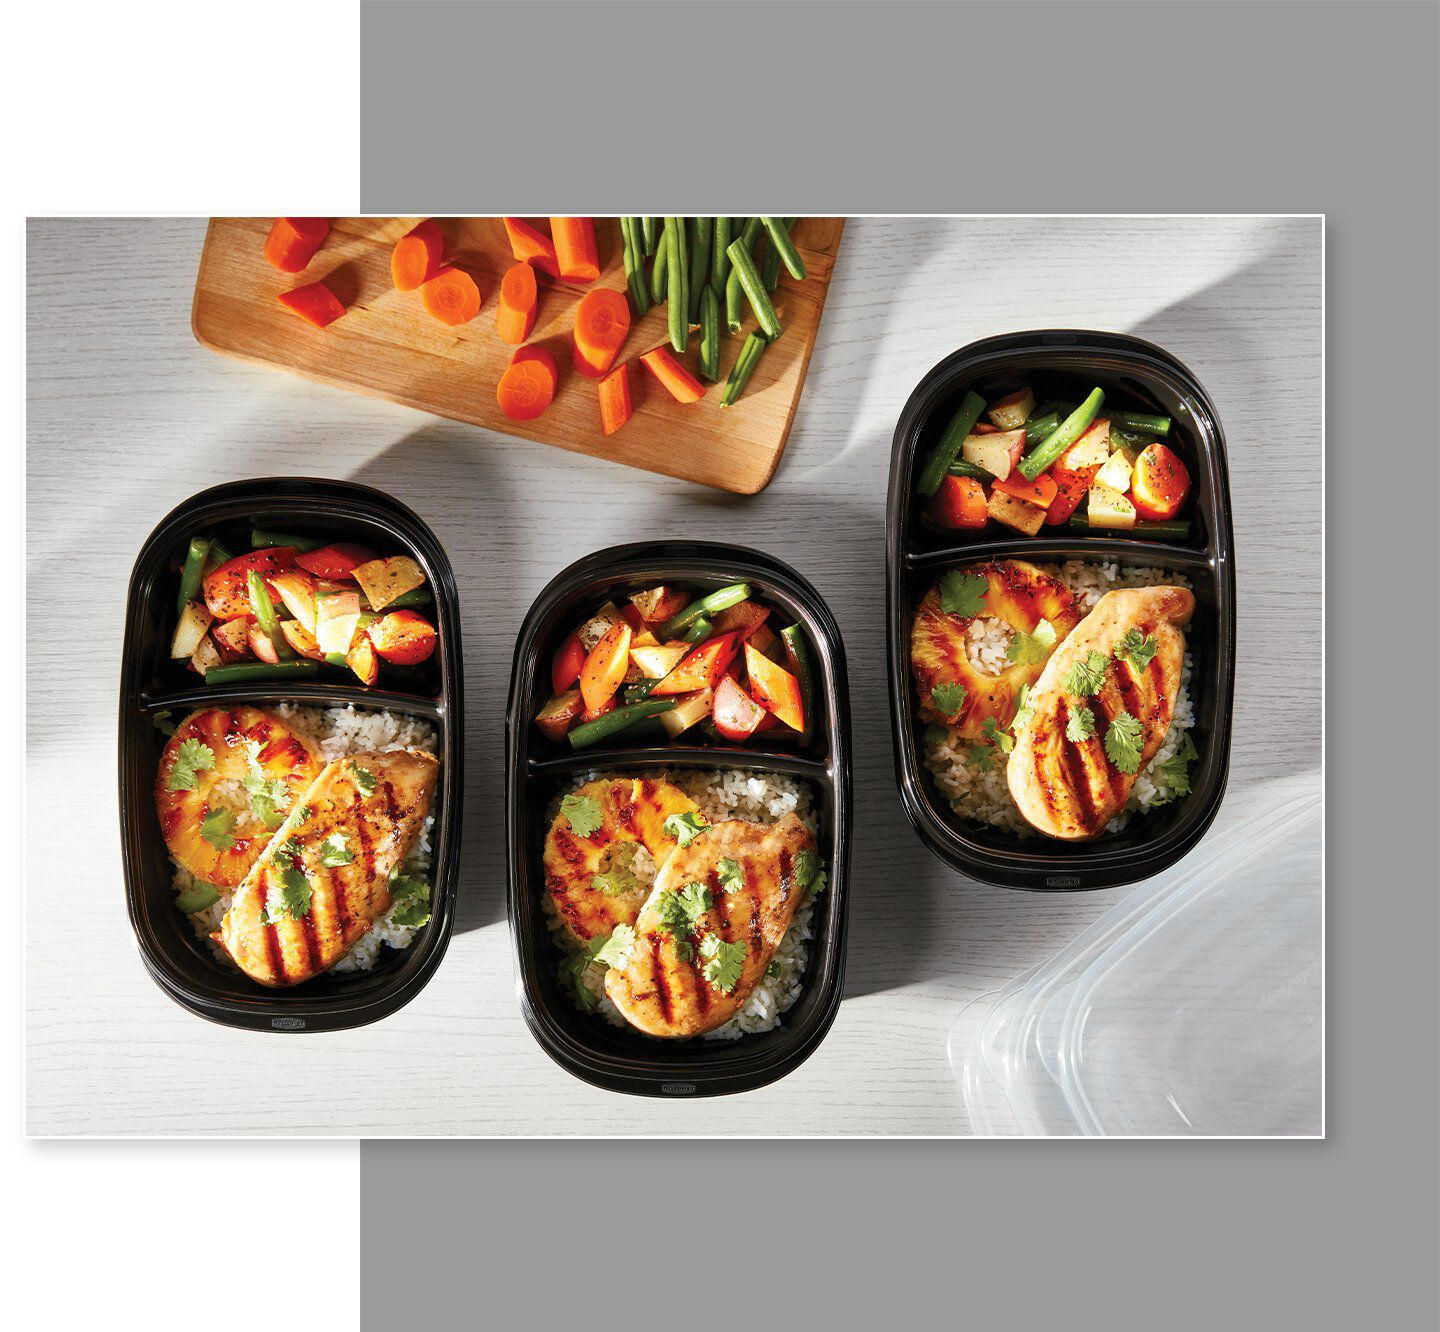 Rubbermaid TakeAlongs food storage containers divided meal prep